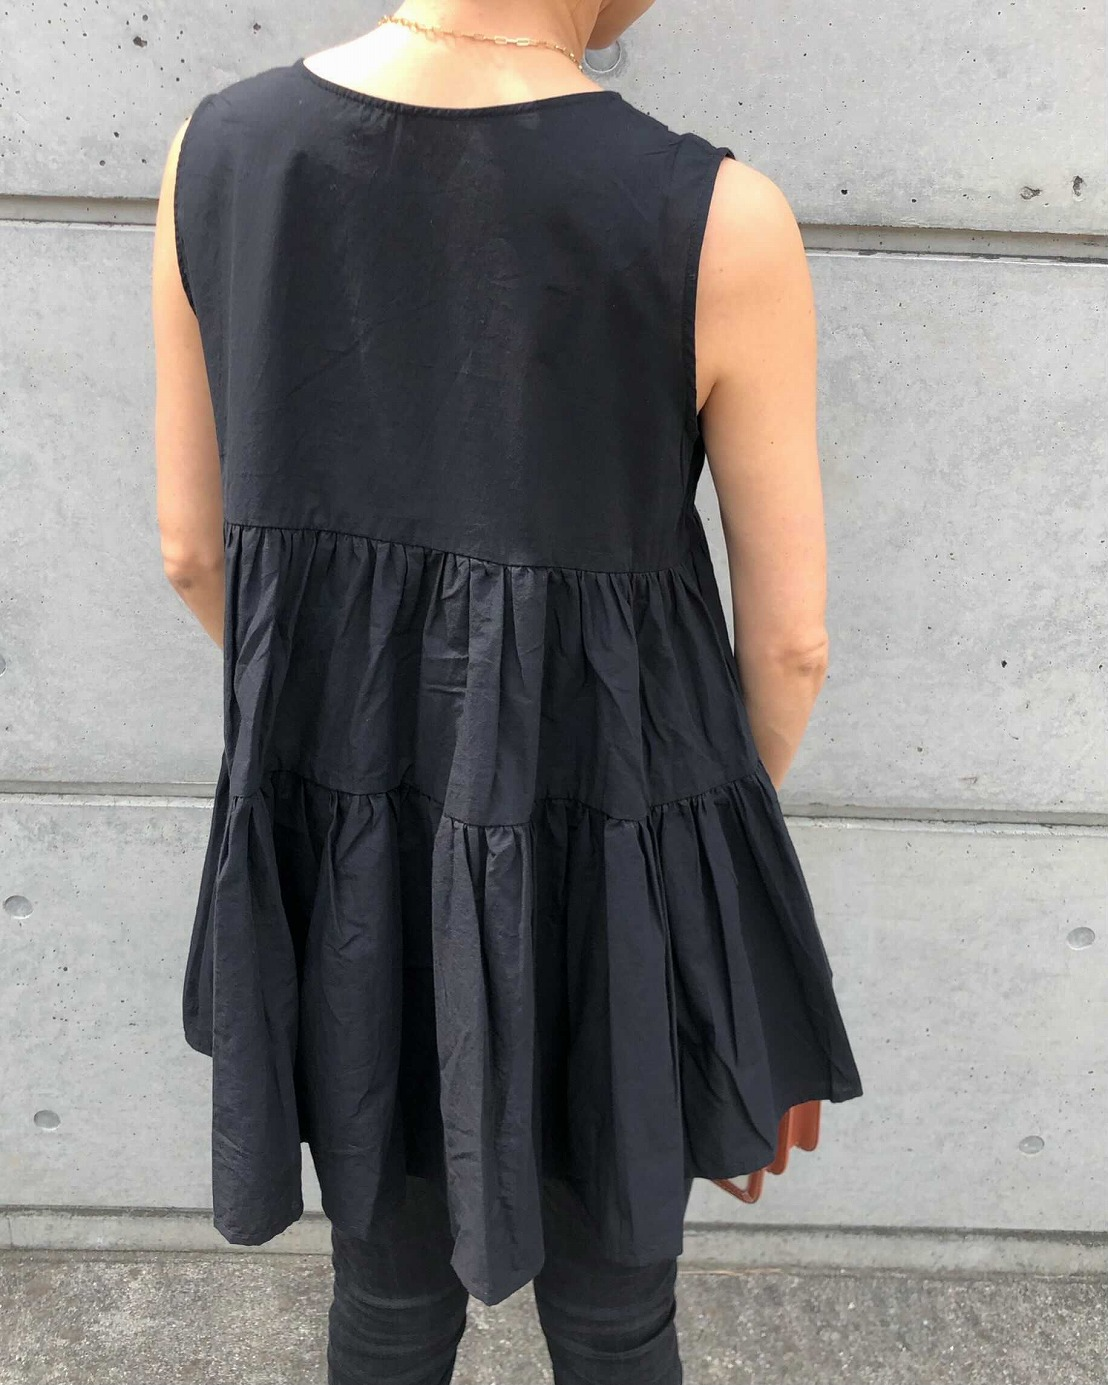 【SOLD OUT】Cローンティアードブラウス ブラック